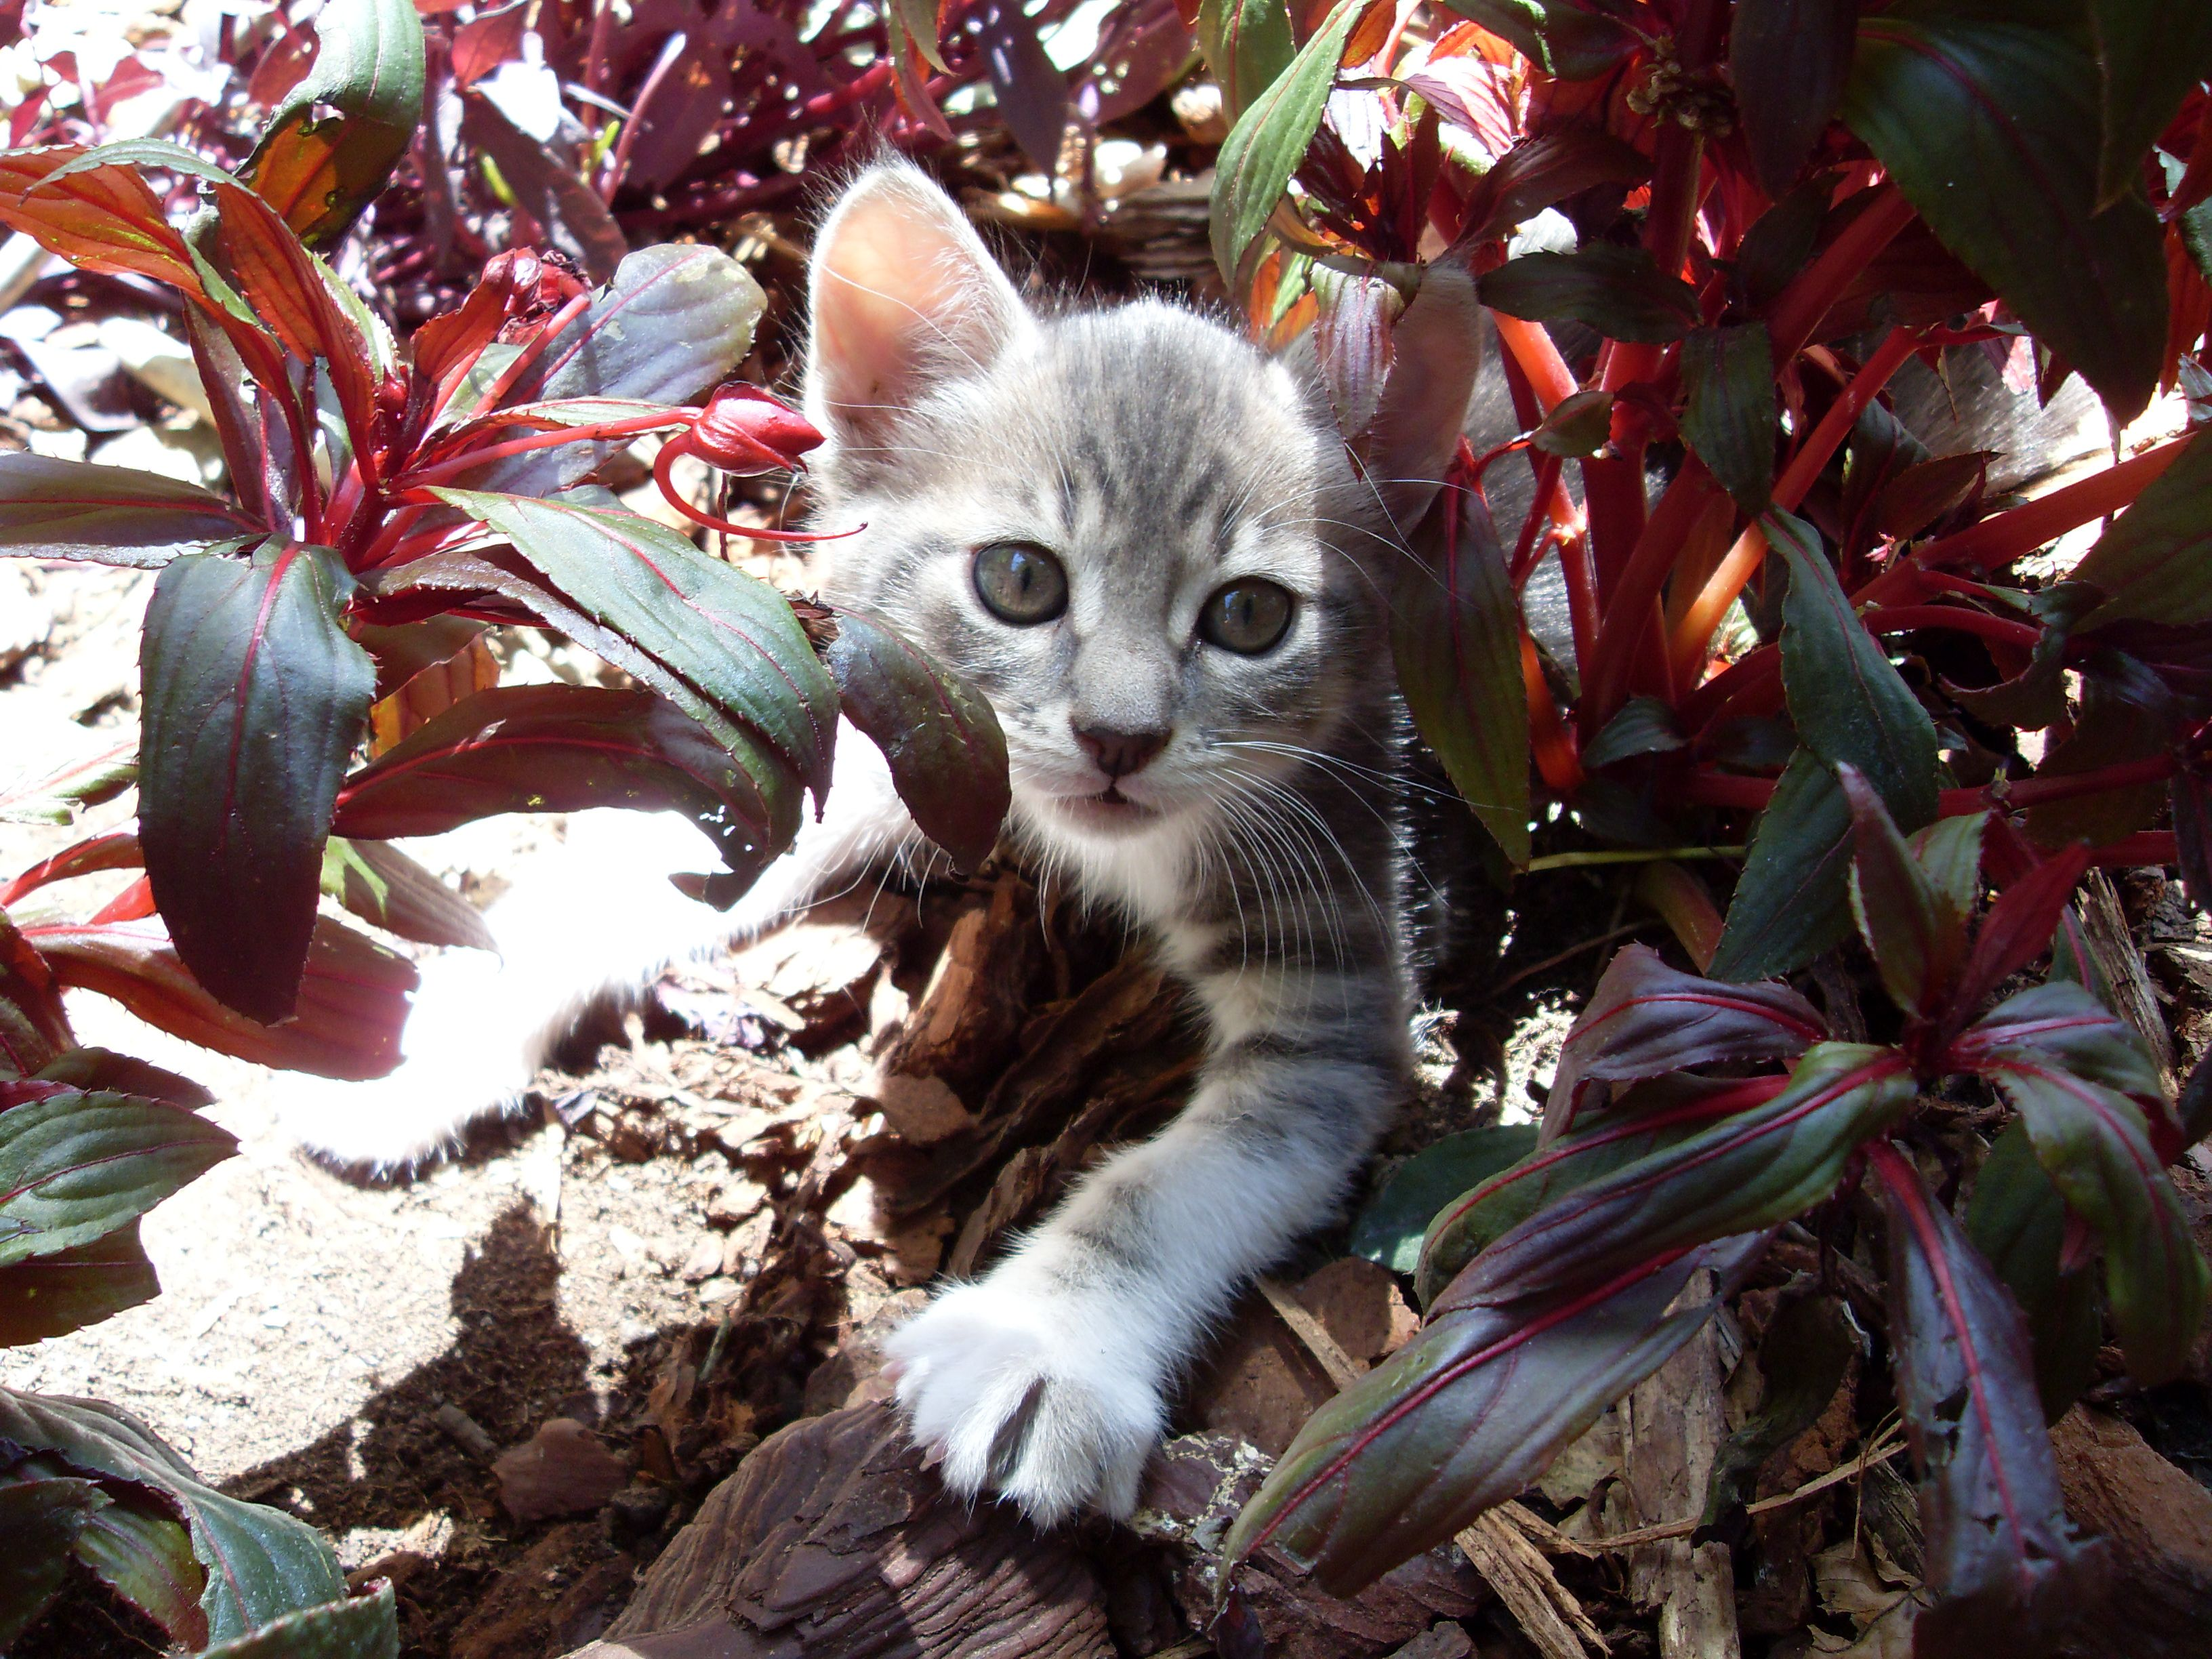 henry in the undergrowth as a kitten